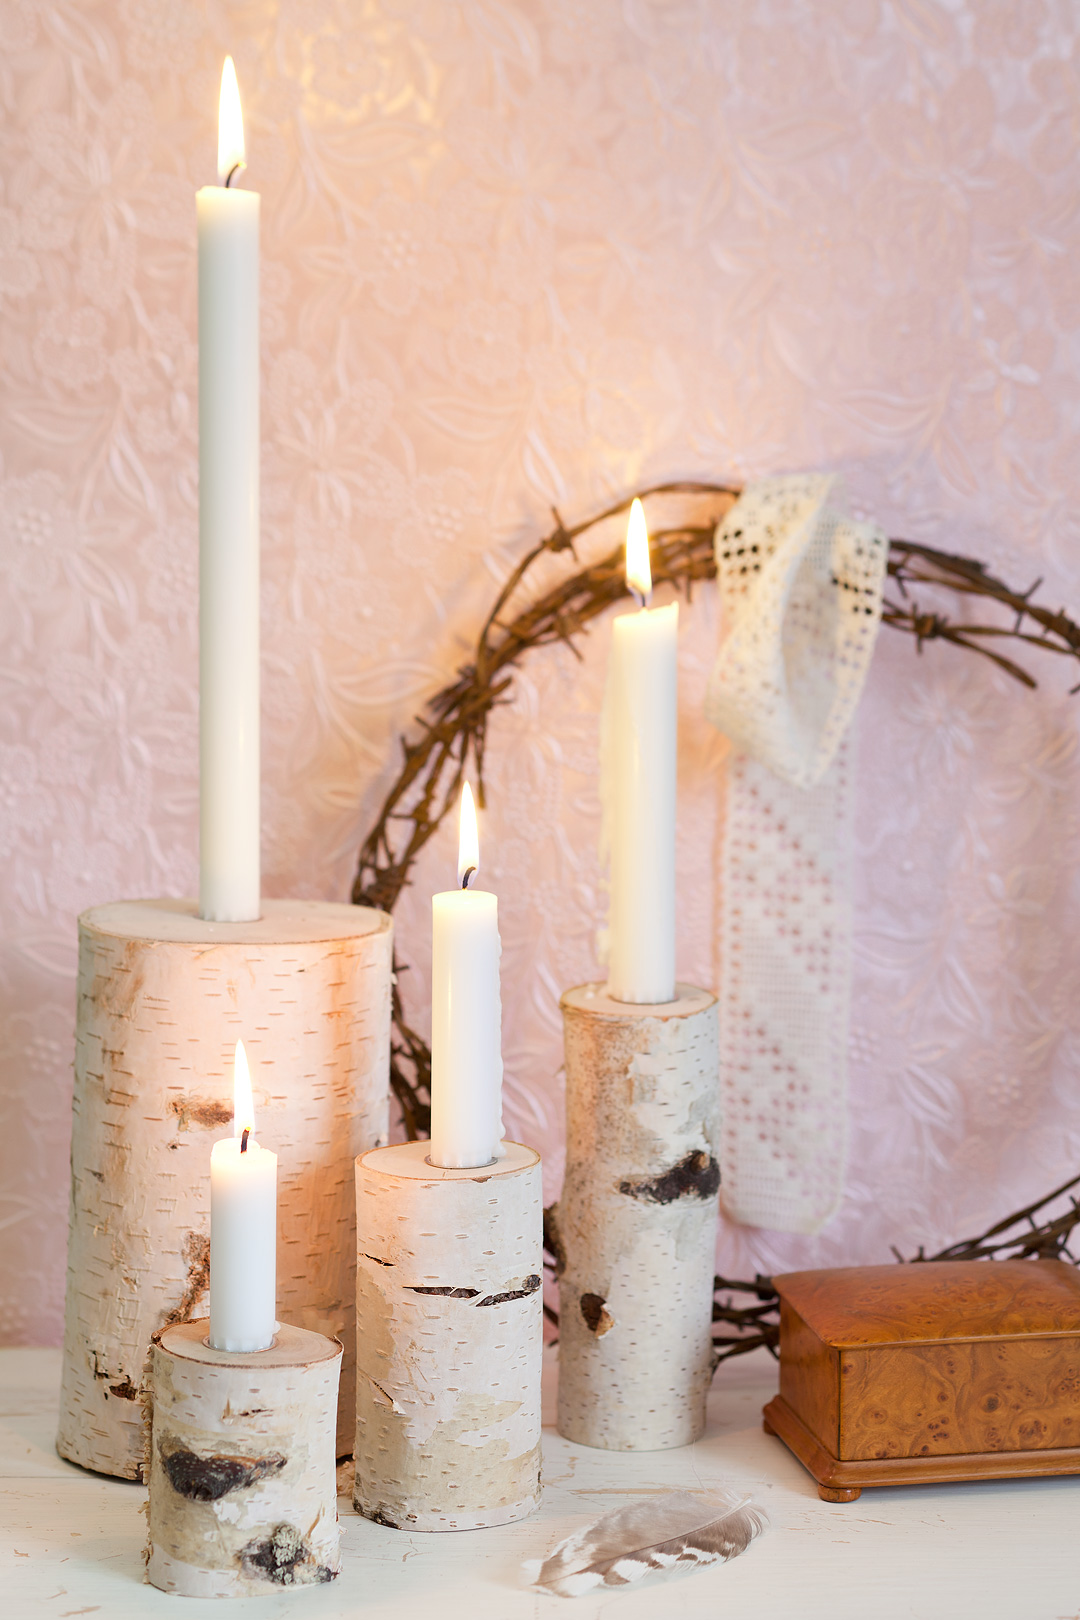 Birch-DIY1©Anna-Lefvert